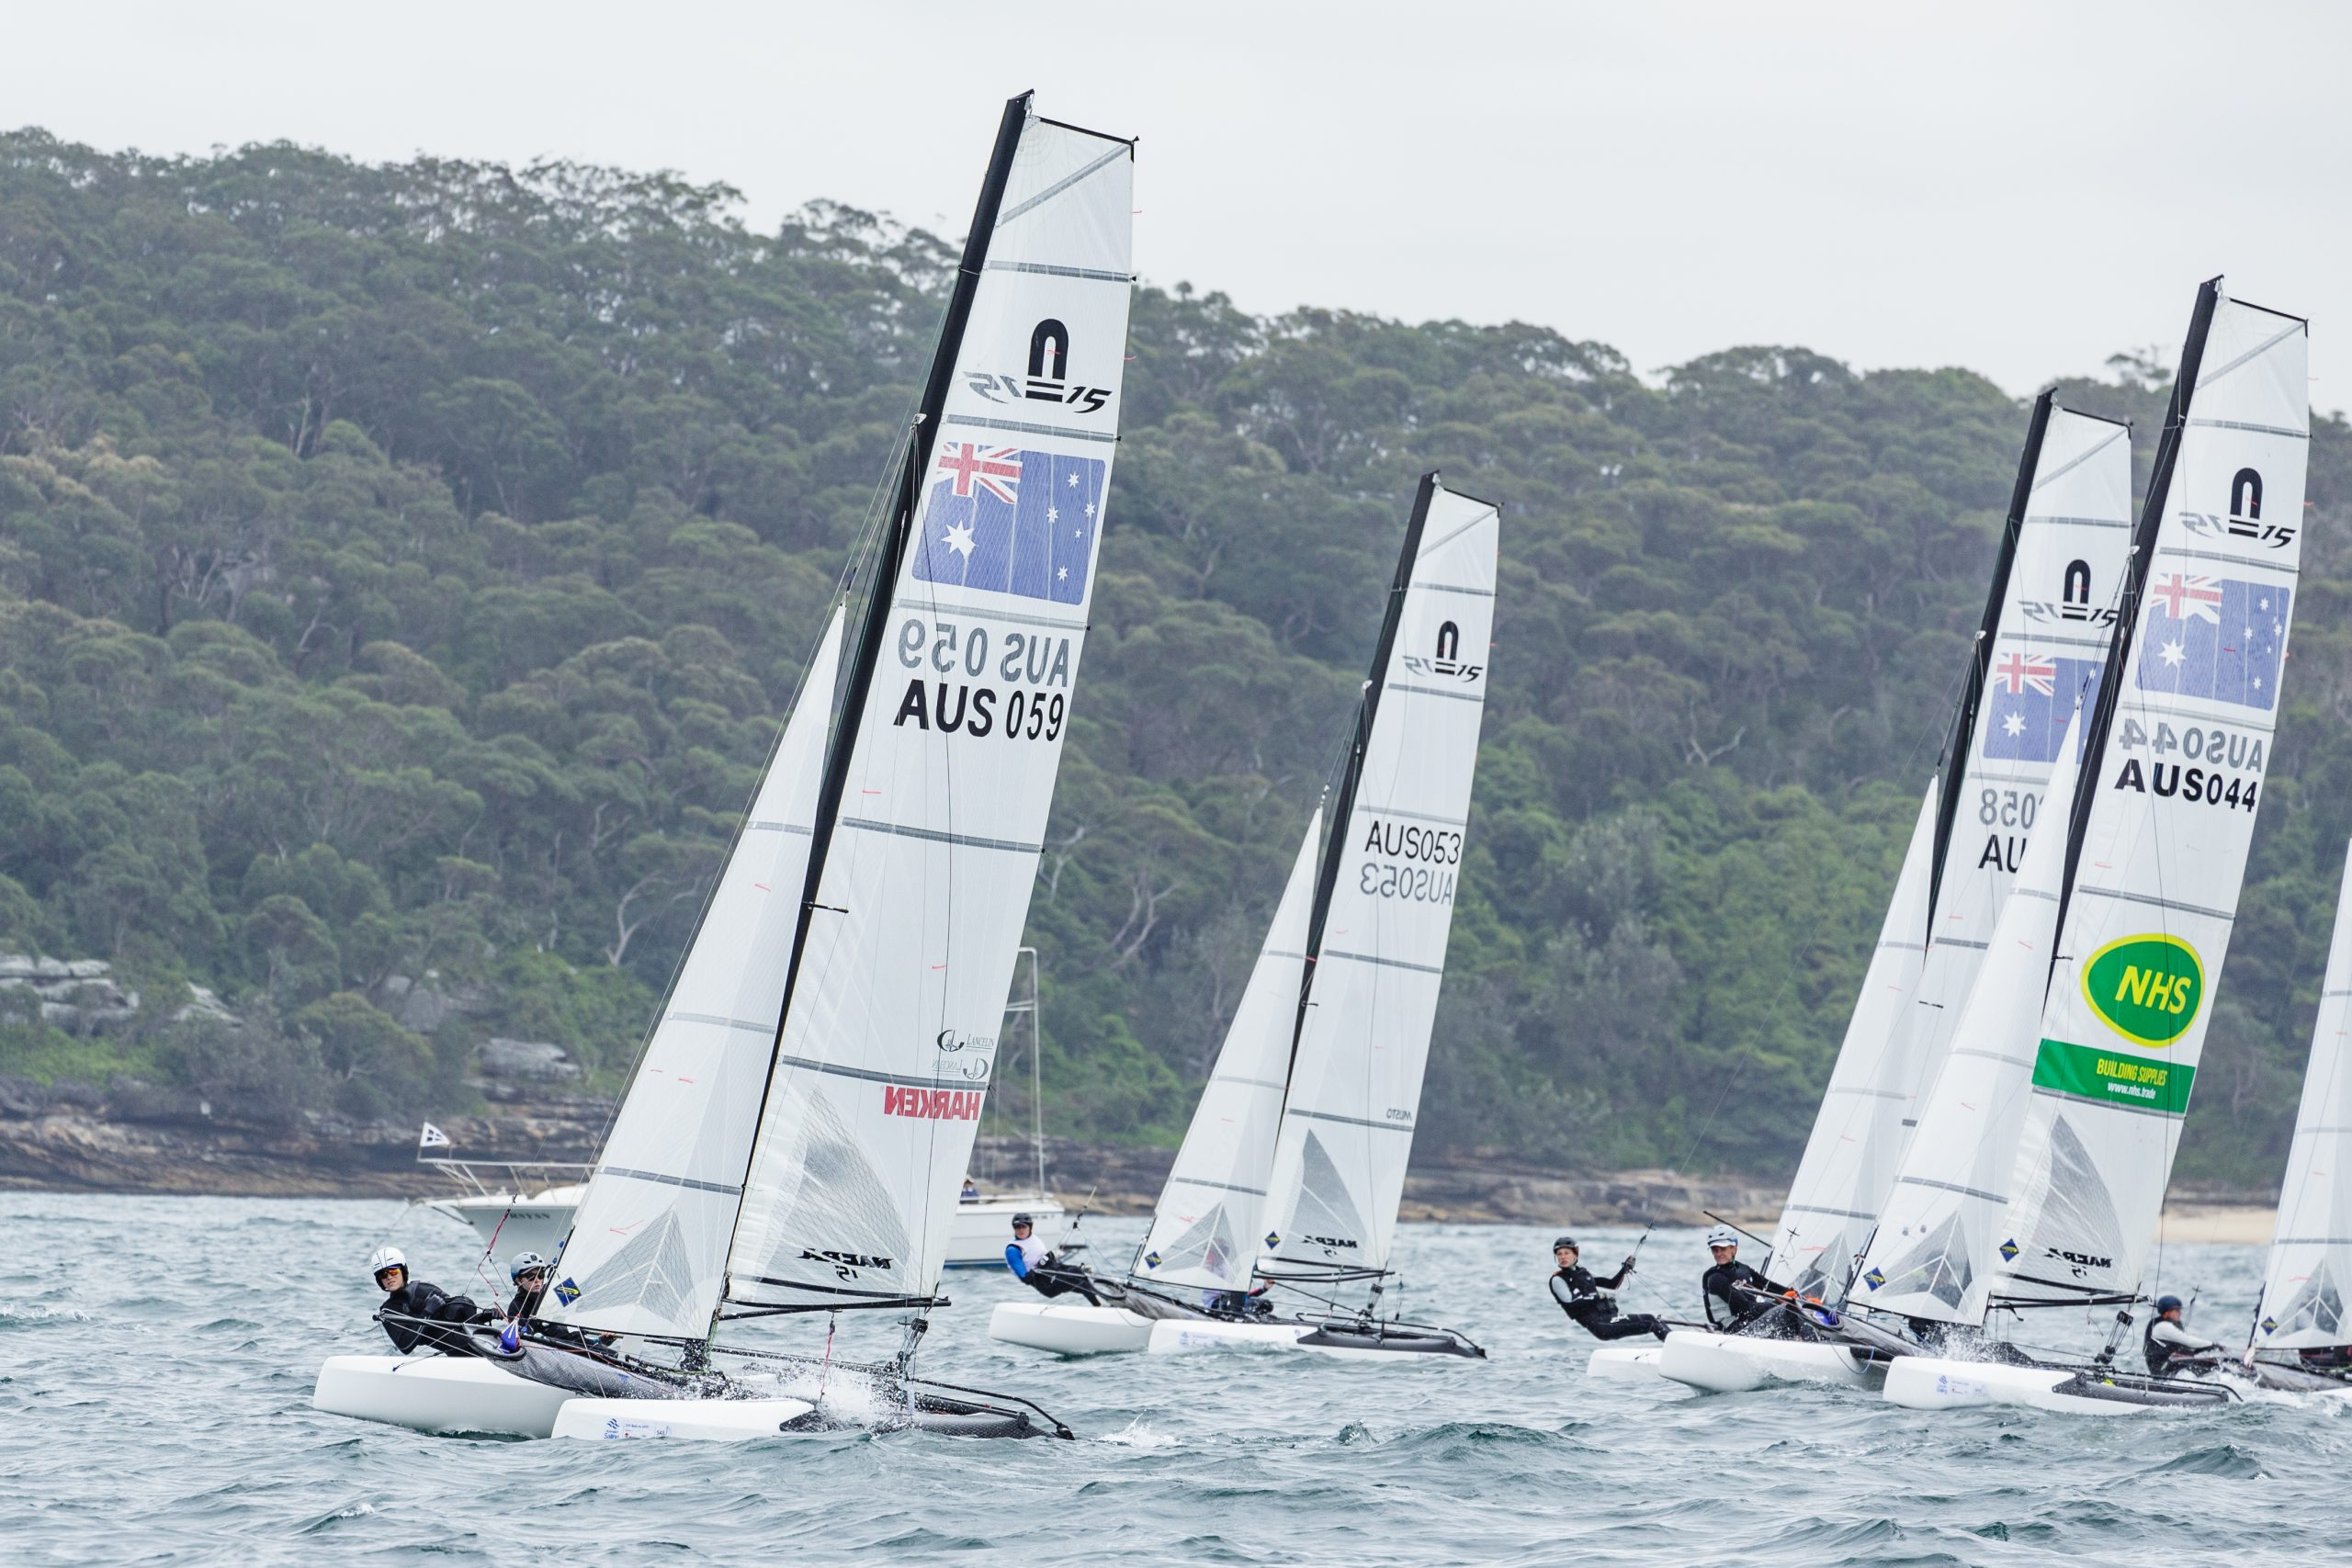 Morton and Swadling finished 2017 with a win at Sail Sydney CREDIT Robin Evans.